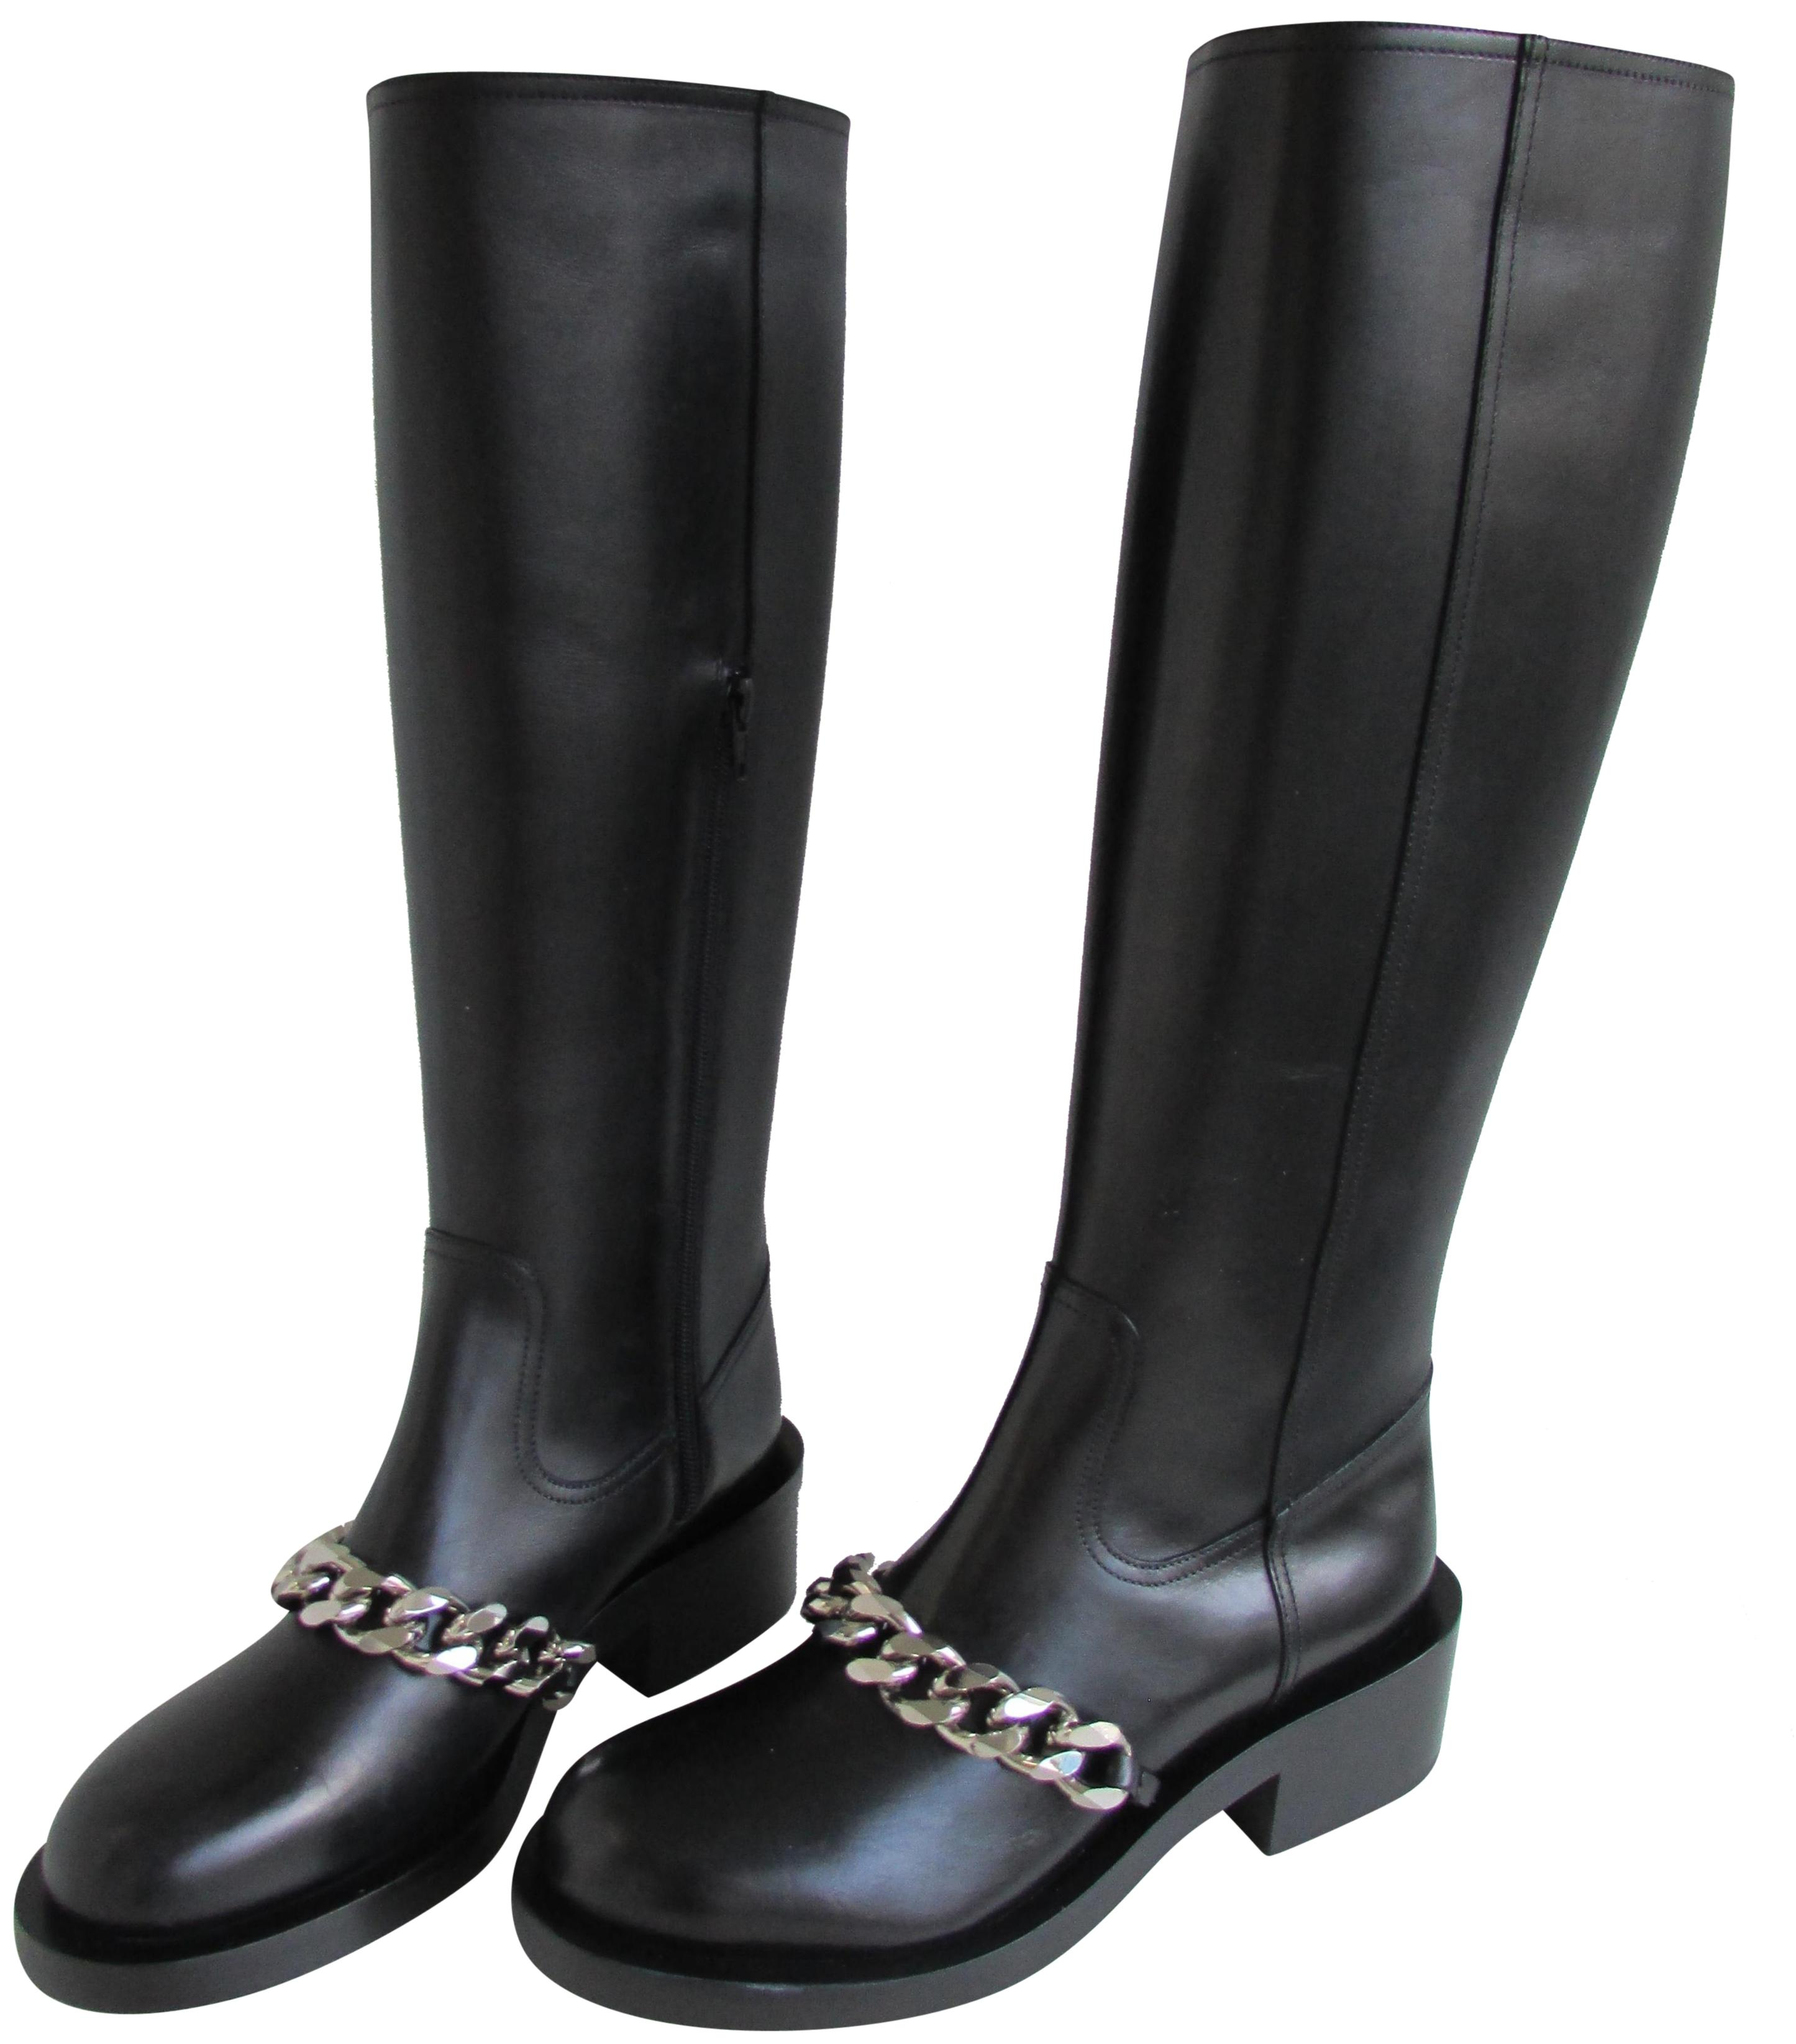 Givenchy Boots/Booties Black Leather Pira Chain Boots/Booties Givenchy Size EU 40 (Approx. US 10) Regular (M, B) cfec97